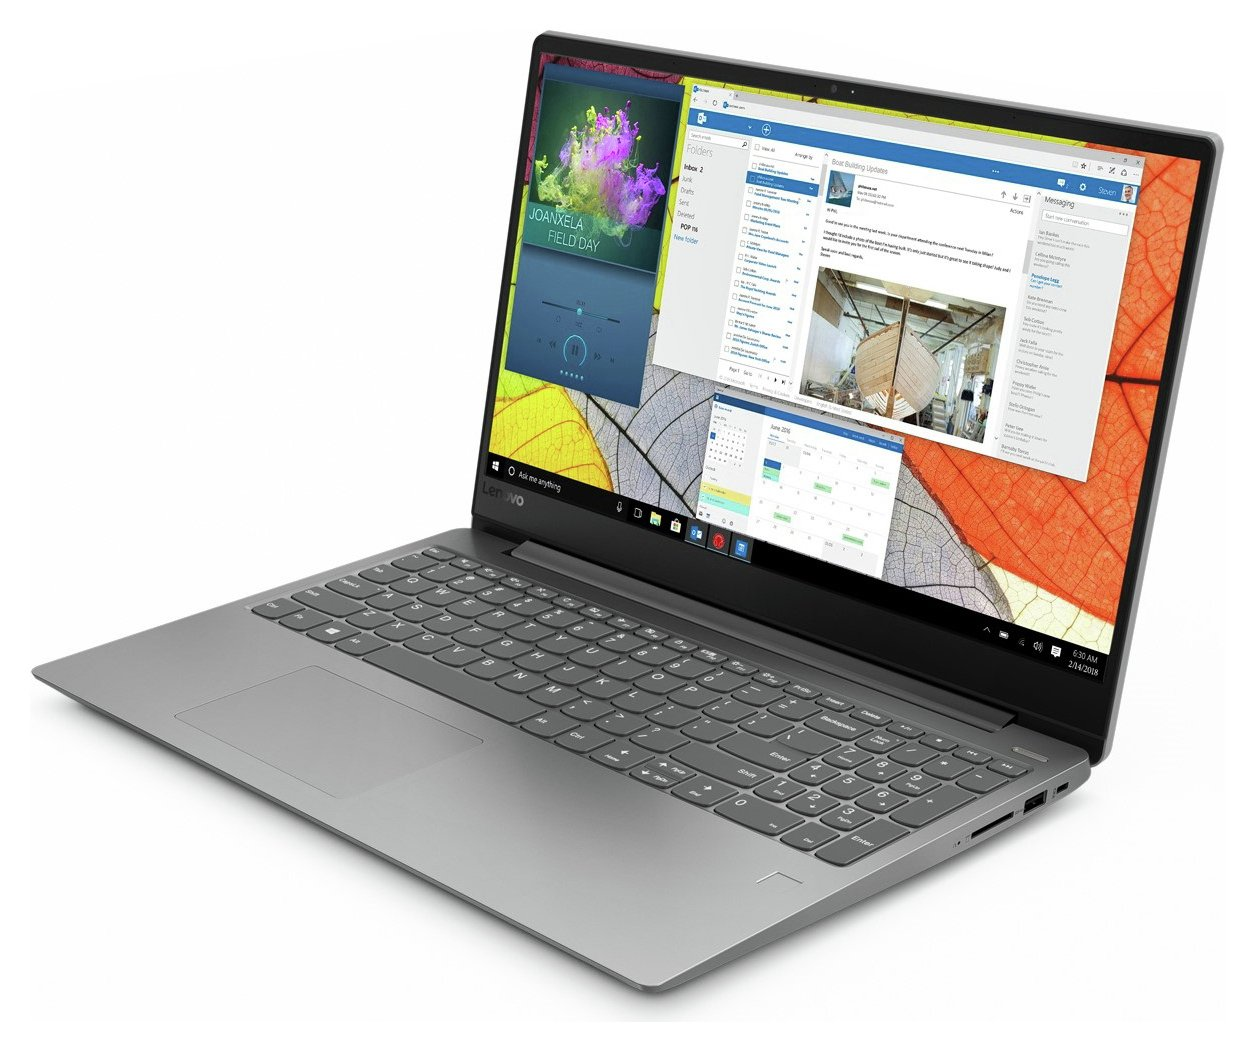 Lenovo IdeaPad 330S 15.6 Inch AMD A6 4GB 128GB Laptop - Grey